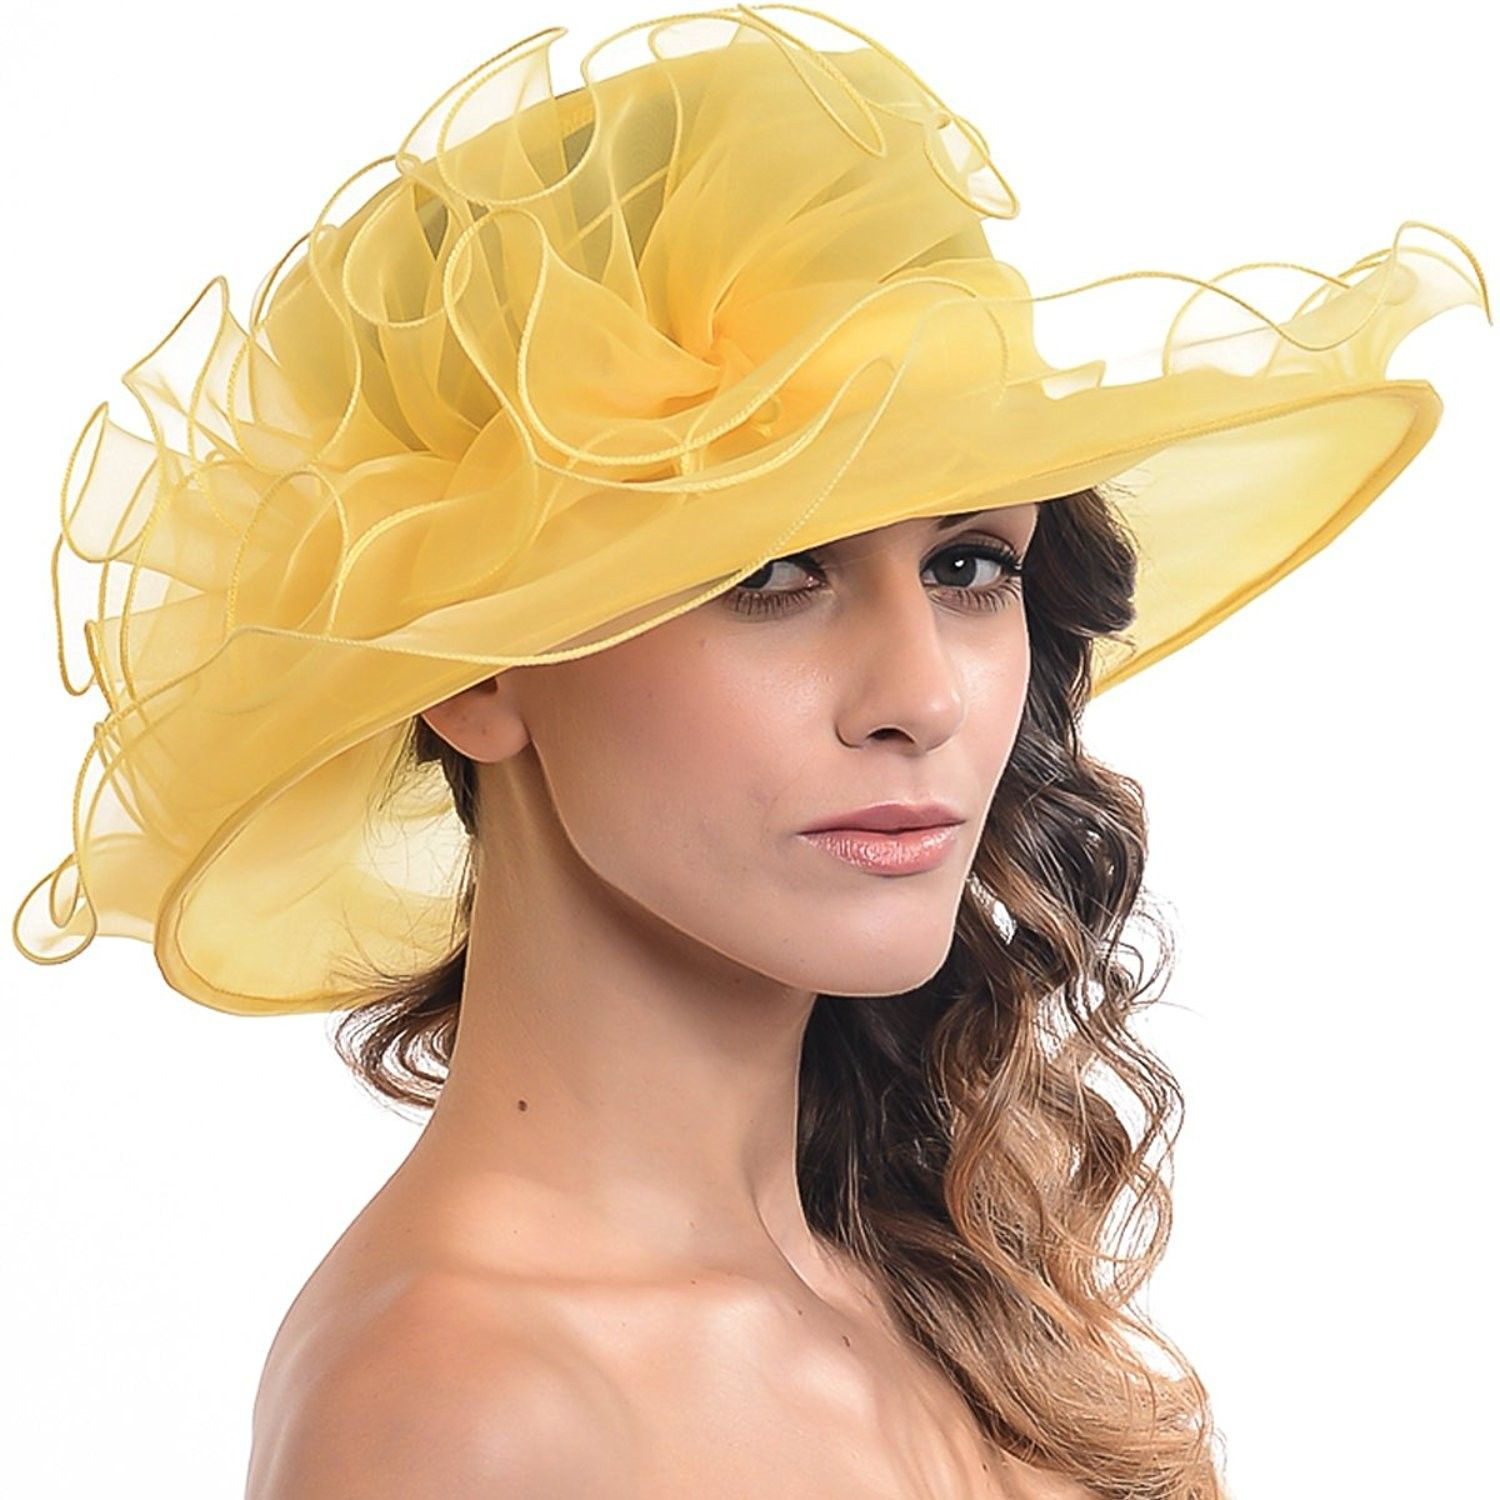 d76bcbe6493 Women Sheer Kentucky Derby Church Wide Brim Hat with Large Flower S019B -  Yellow - CB12E24GBNV - Hats   Caps